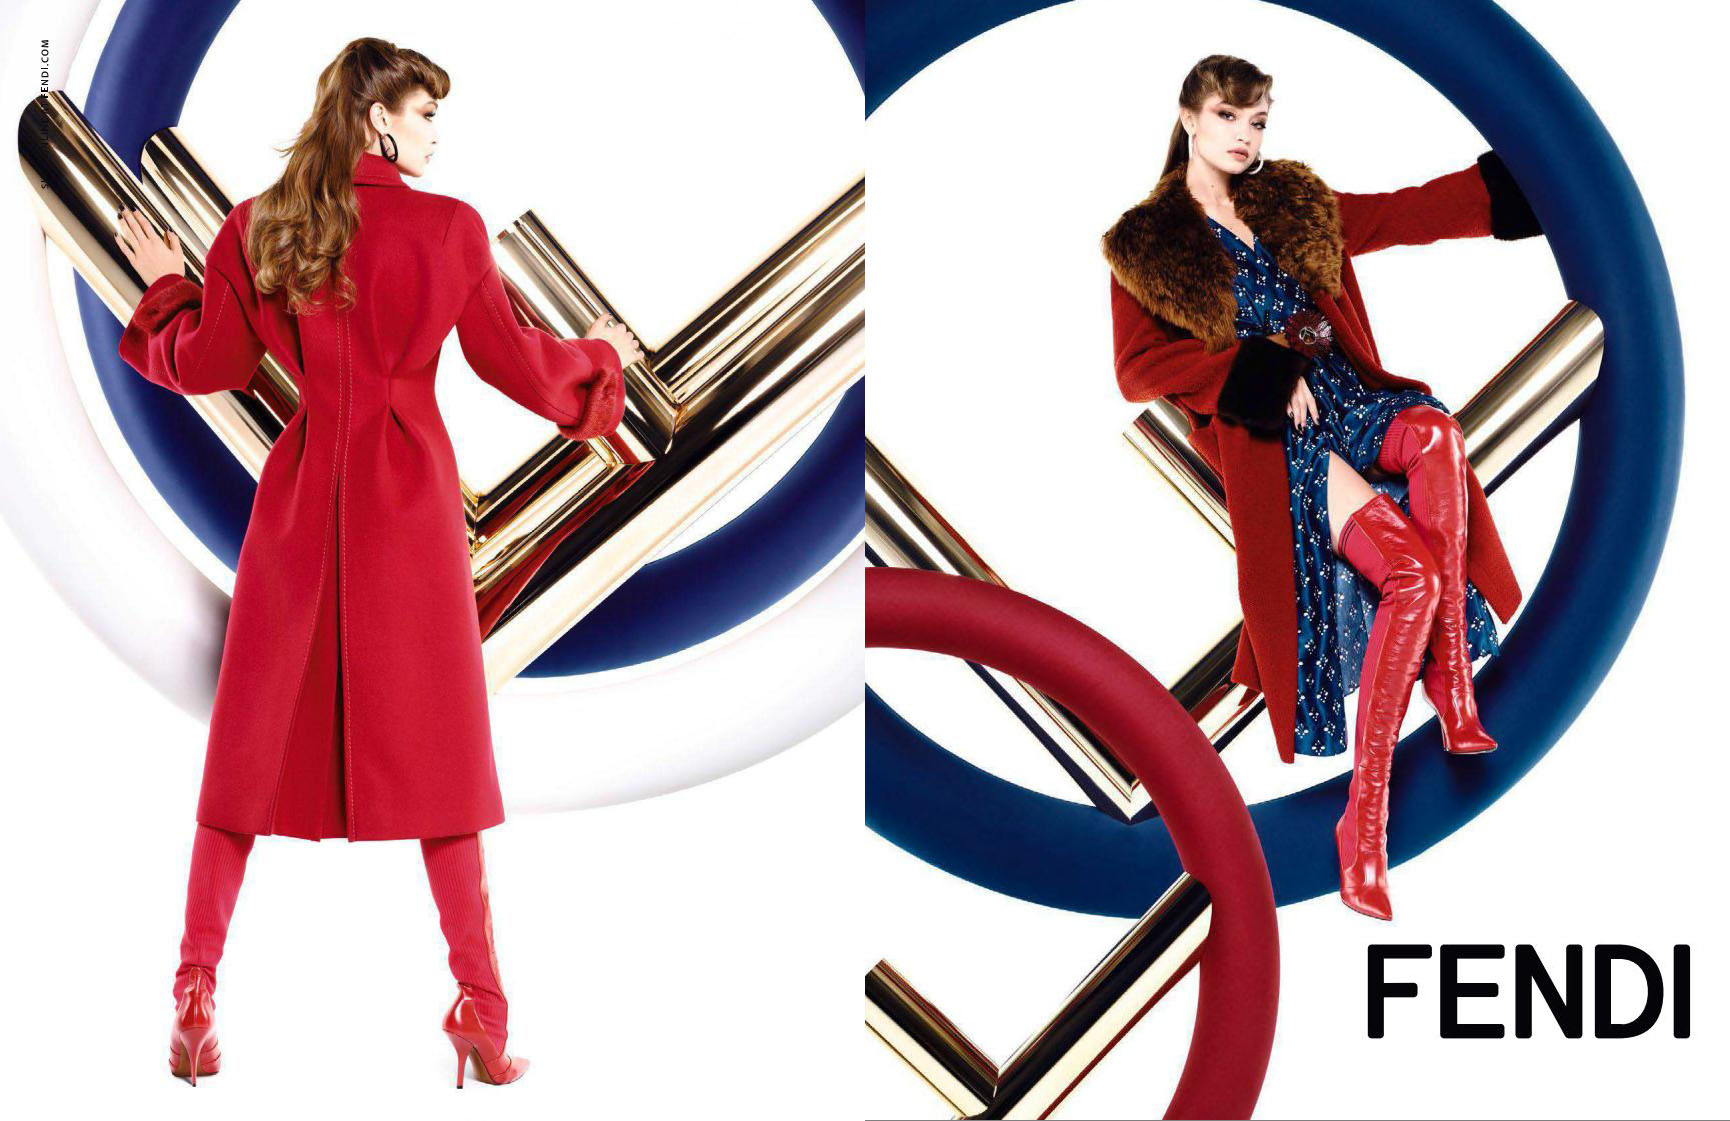 fendi-fall-2017-ad-campaign-the-impression-05-2